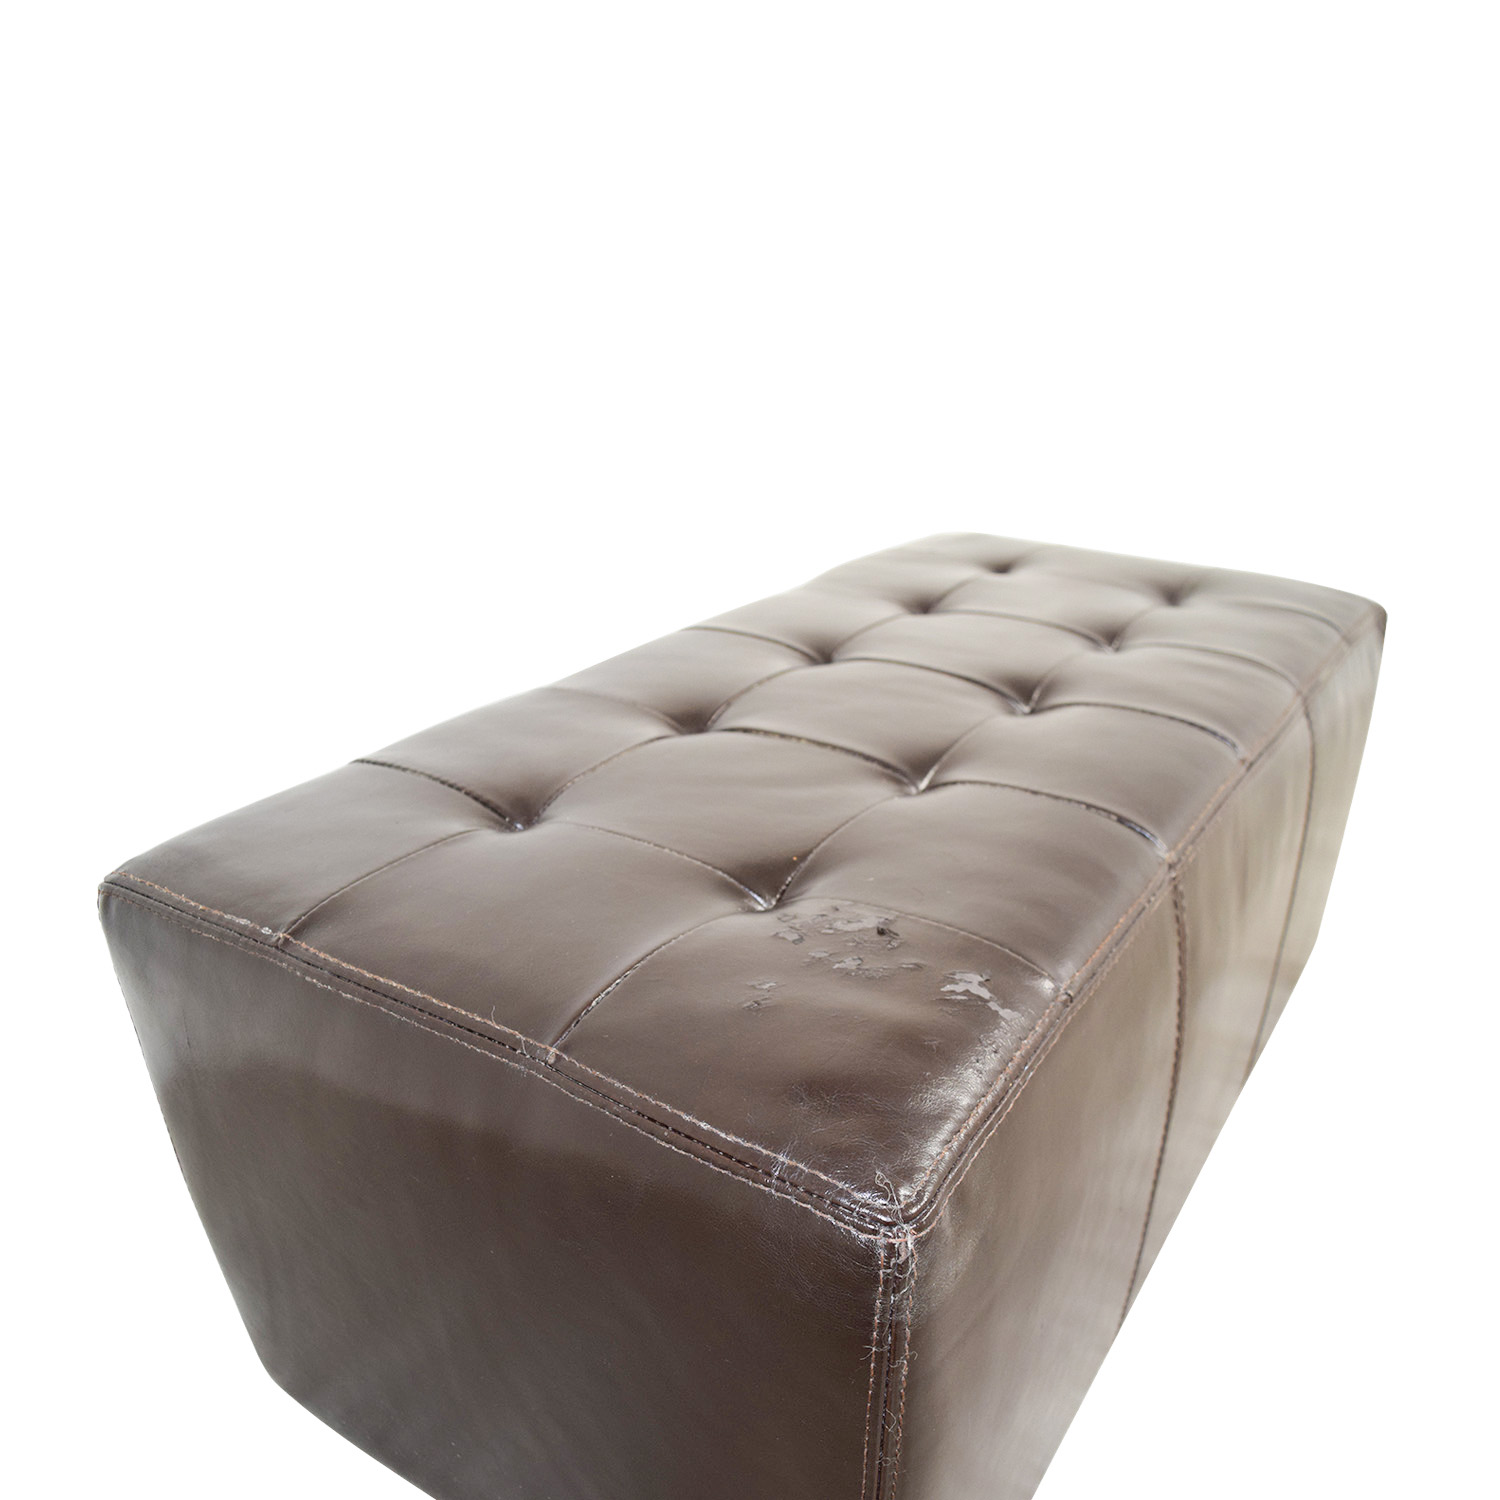 90 off ikea ikea brown leather tufted ottoman chairs. Black Bedroom Furniture Sets. Home Design Ideas